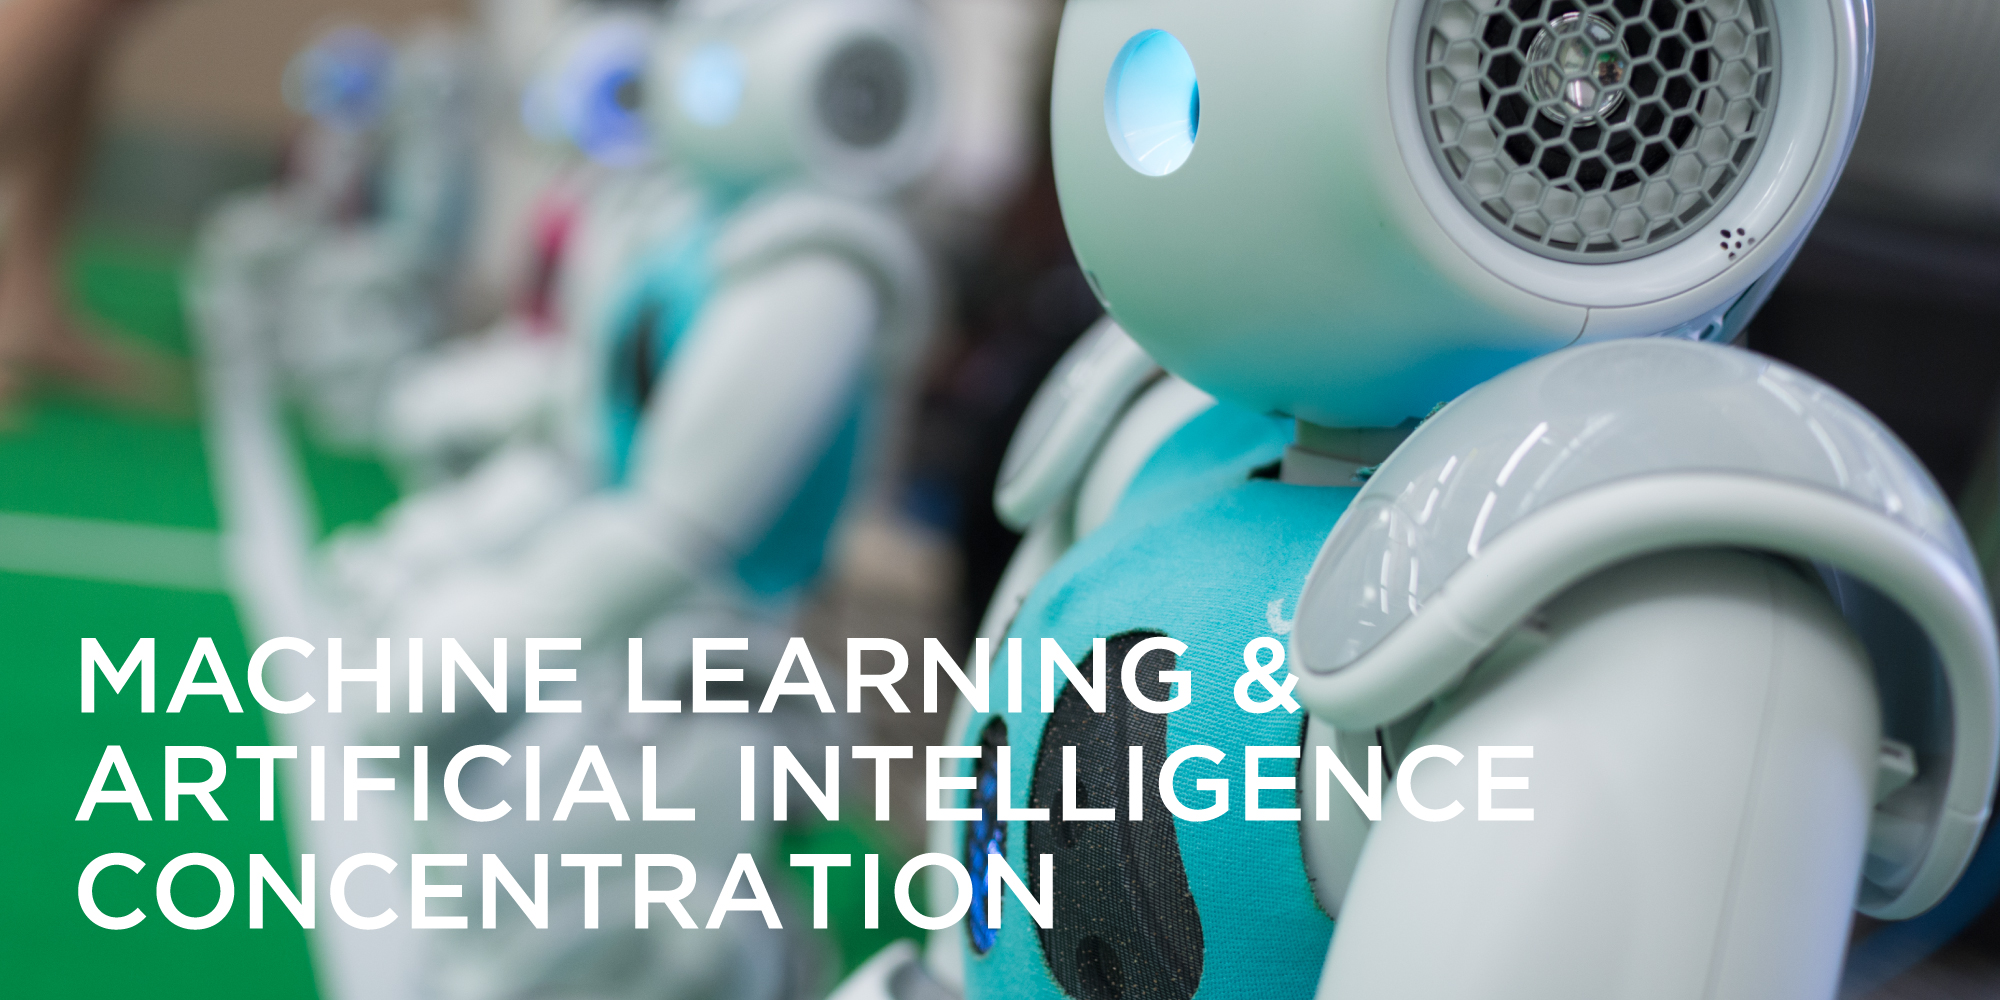 Machine Learning and Artificial Intelligence - The concentration for Machine Learning and Artificial Intelligence is ideal for students who desire to learn how to program computer systems to 'learn' from data and perform complex tasks normally associated with human-level intelligence.